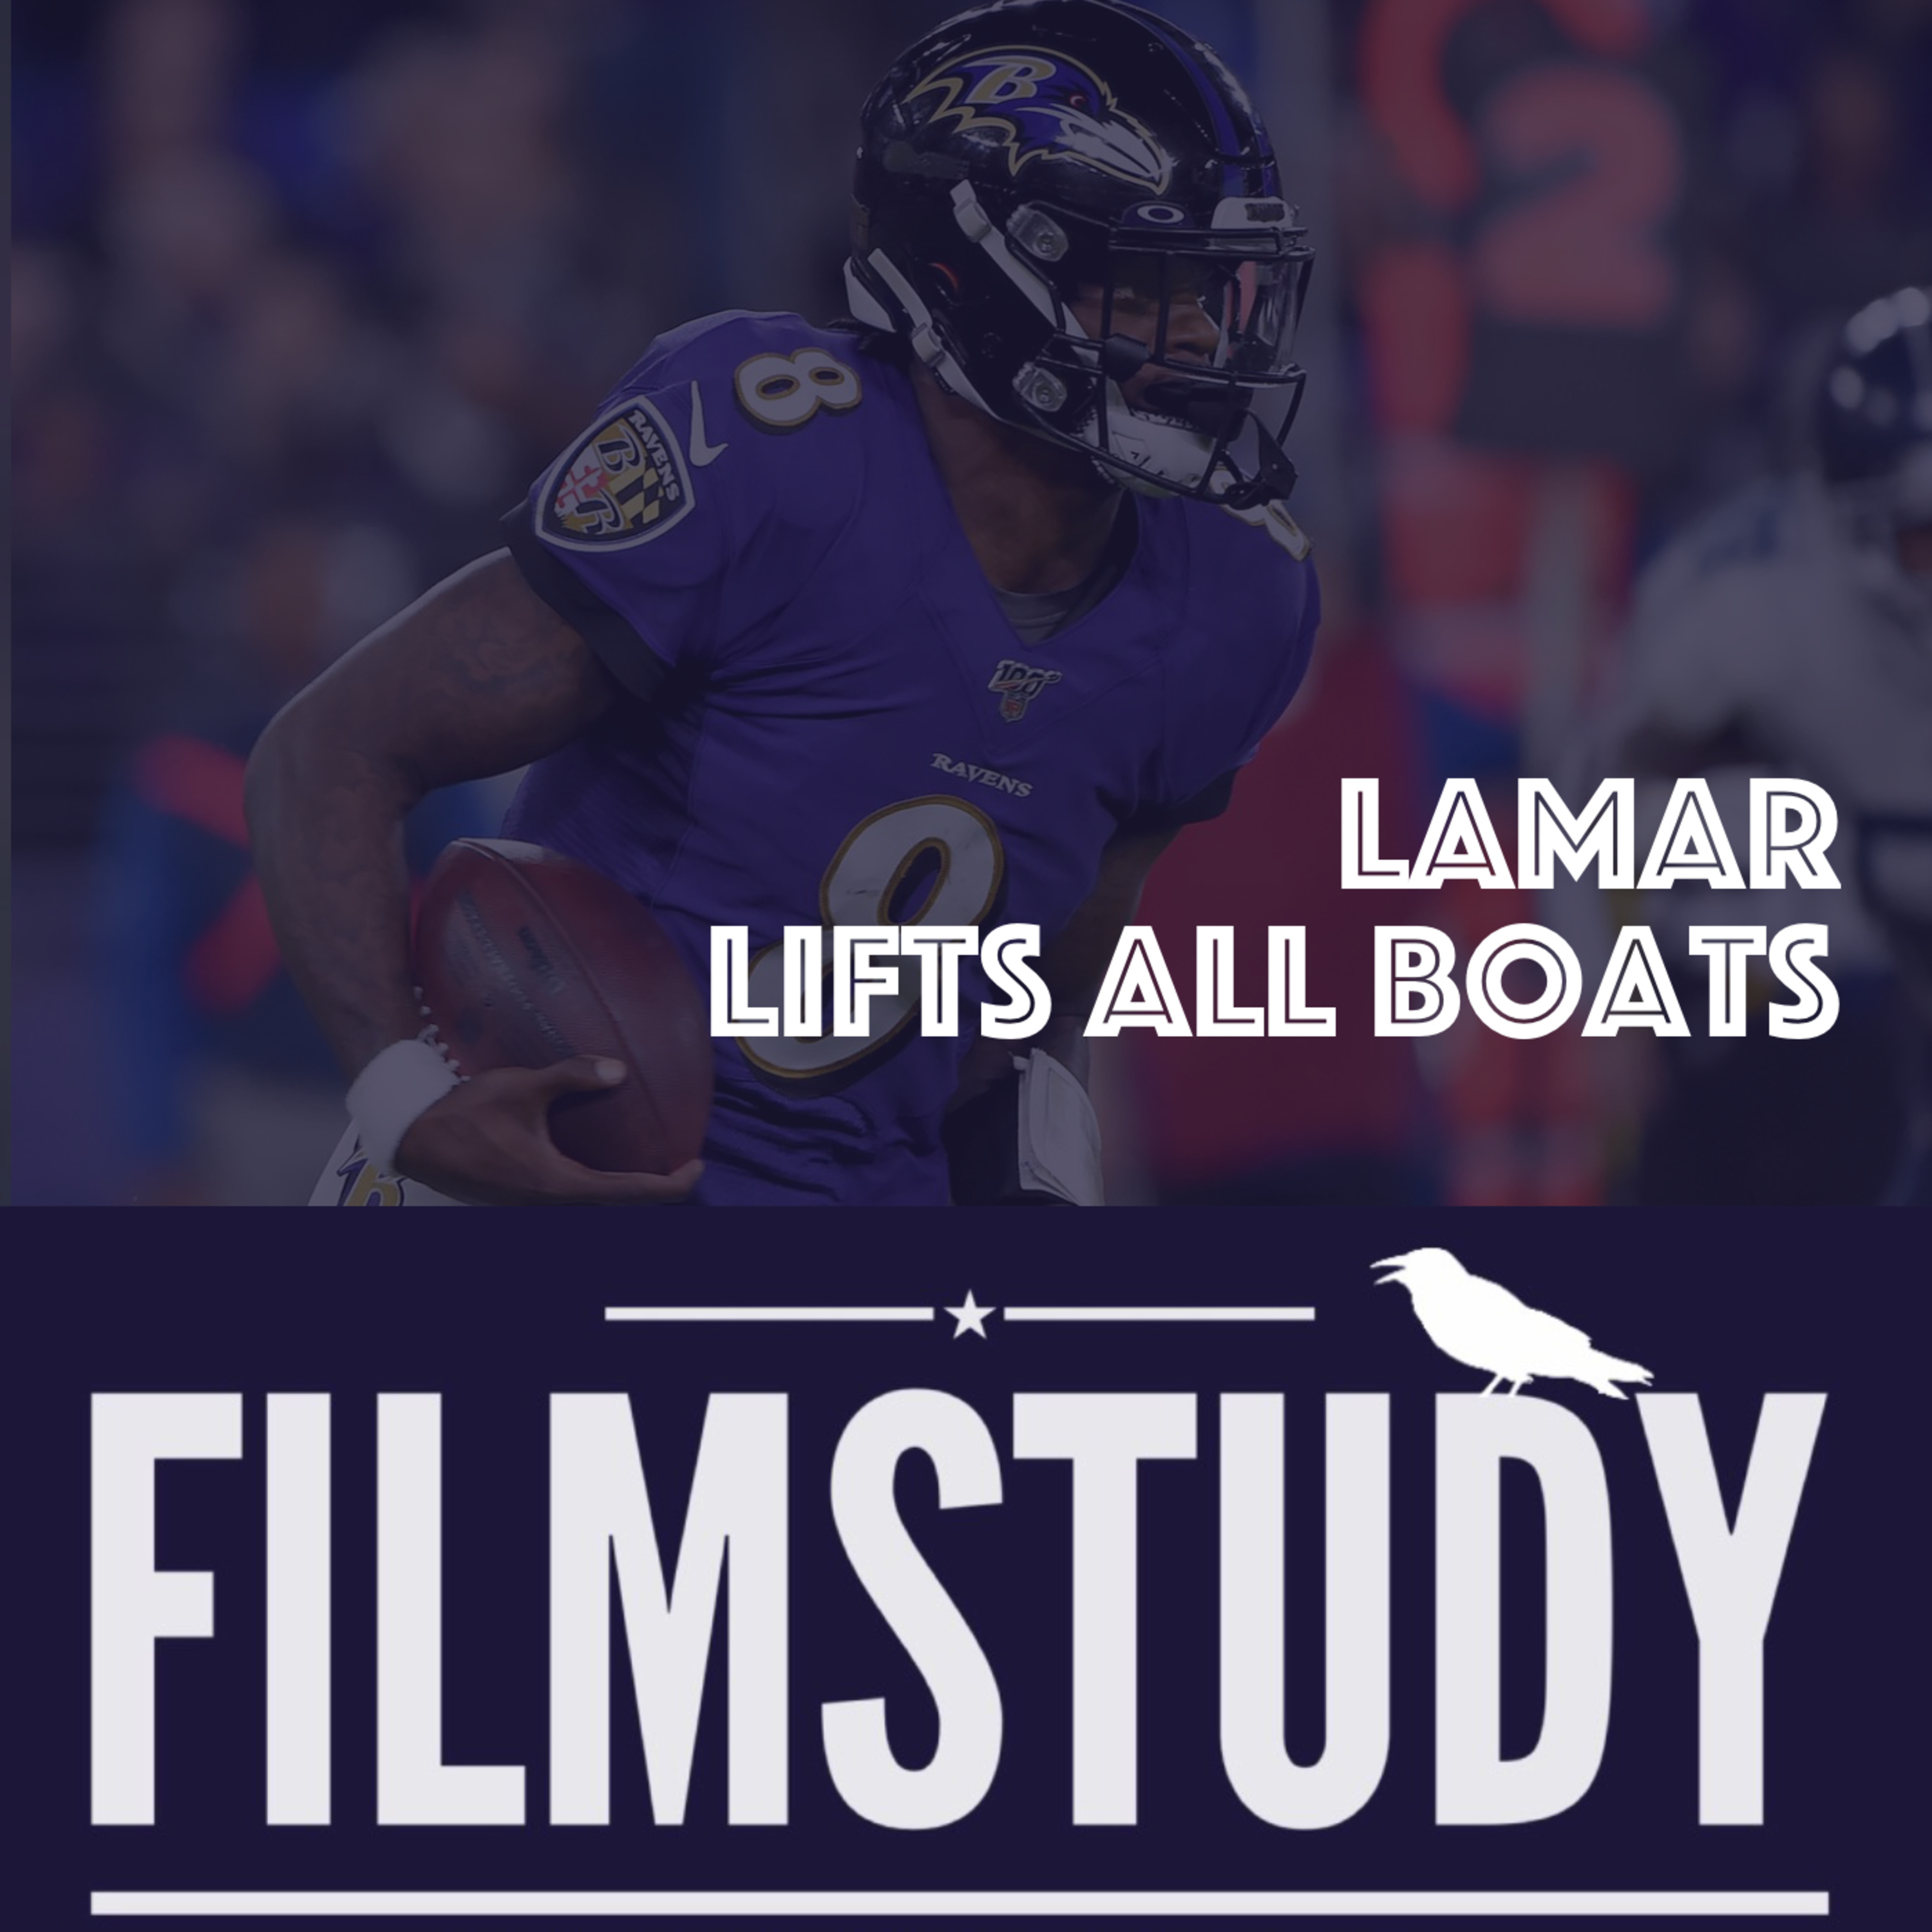 Lamar Lifts All Boats